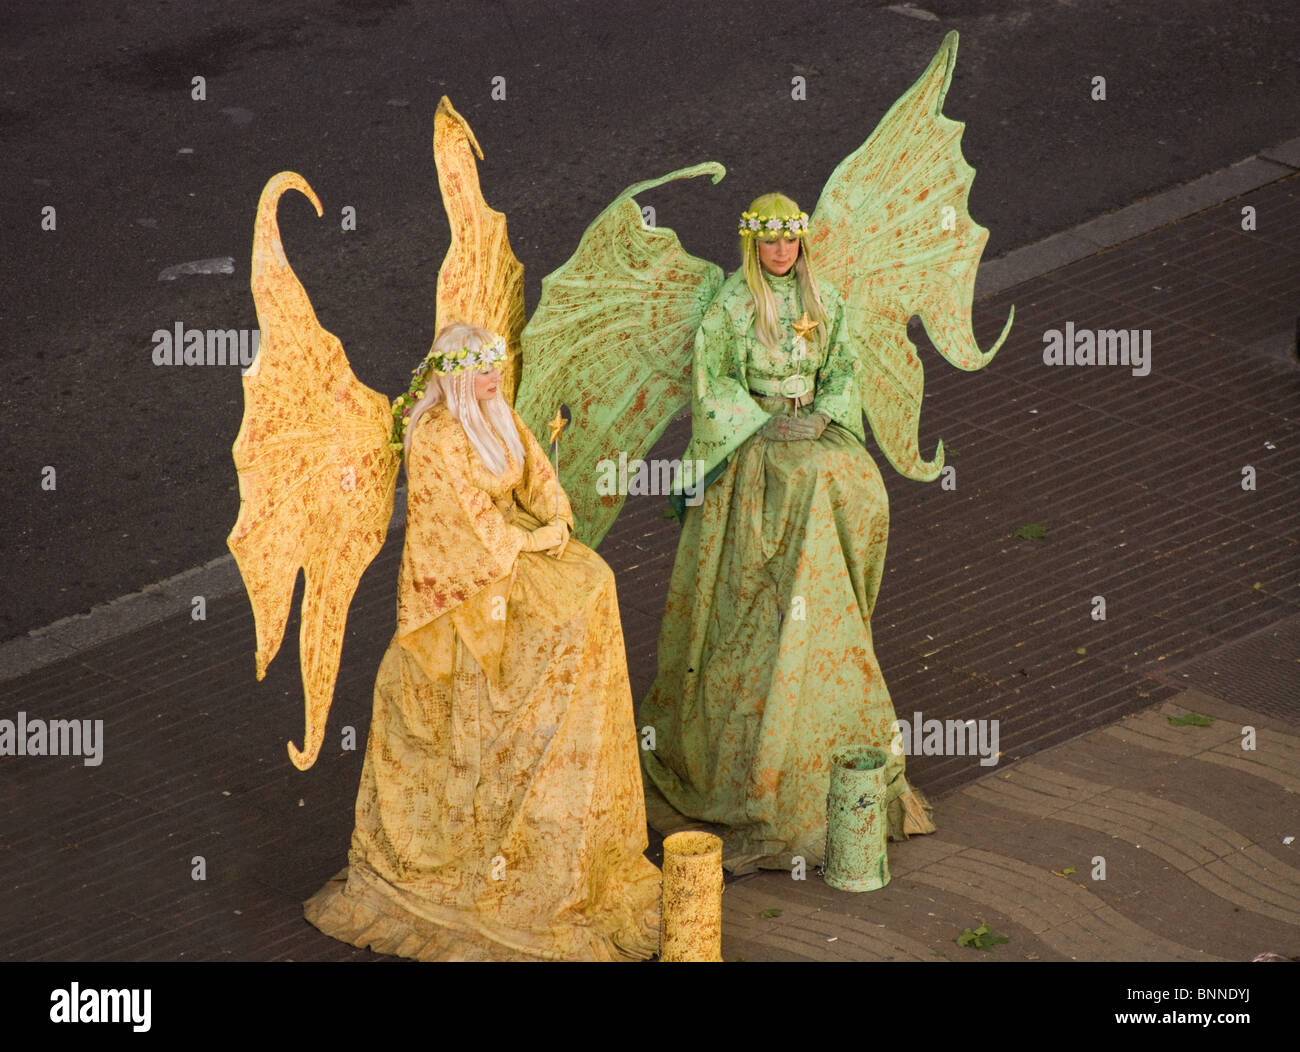 TWO FAIRIES STREET ARTISTS HUMAN STATUES IN FANCY DRESS ON LAS RAMBLAS  BARCELONA SPAIN EUROPE